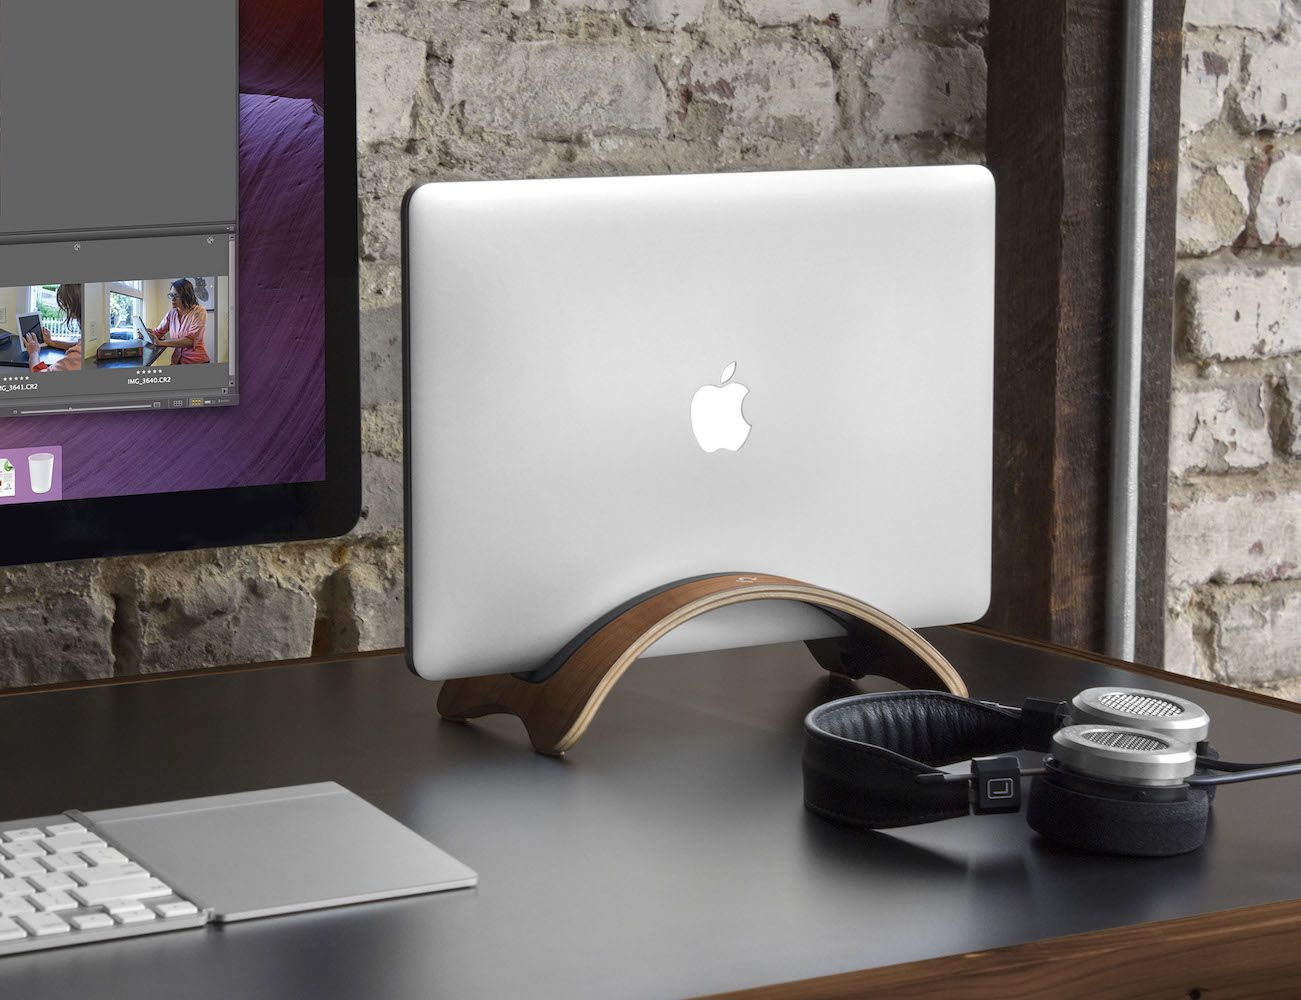 Furniture Office Workspace Cool Macbook Air Designer Bookarc Mod Vertical macbook Stand By Twelve South Make Your workspace Look More Tidy Mockup Hunt Bookarc Mod Vertical macbook Stand By Twelve South Make Your